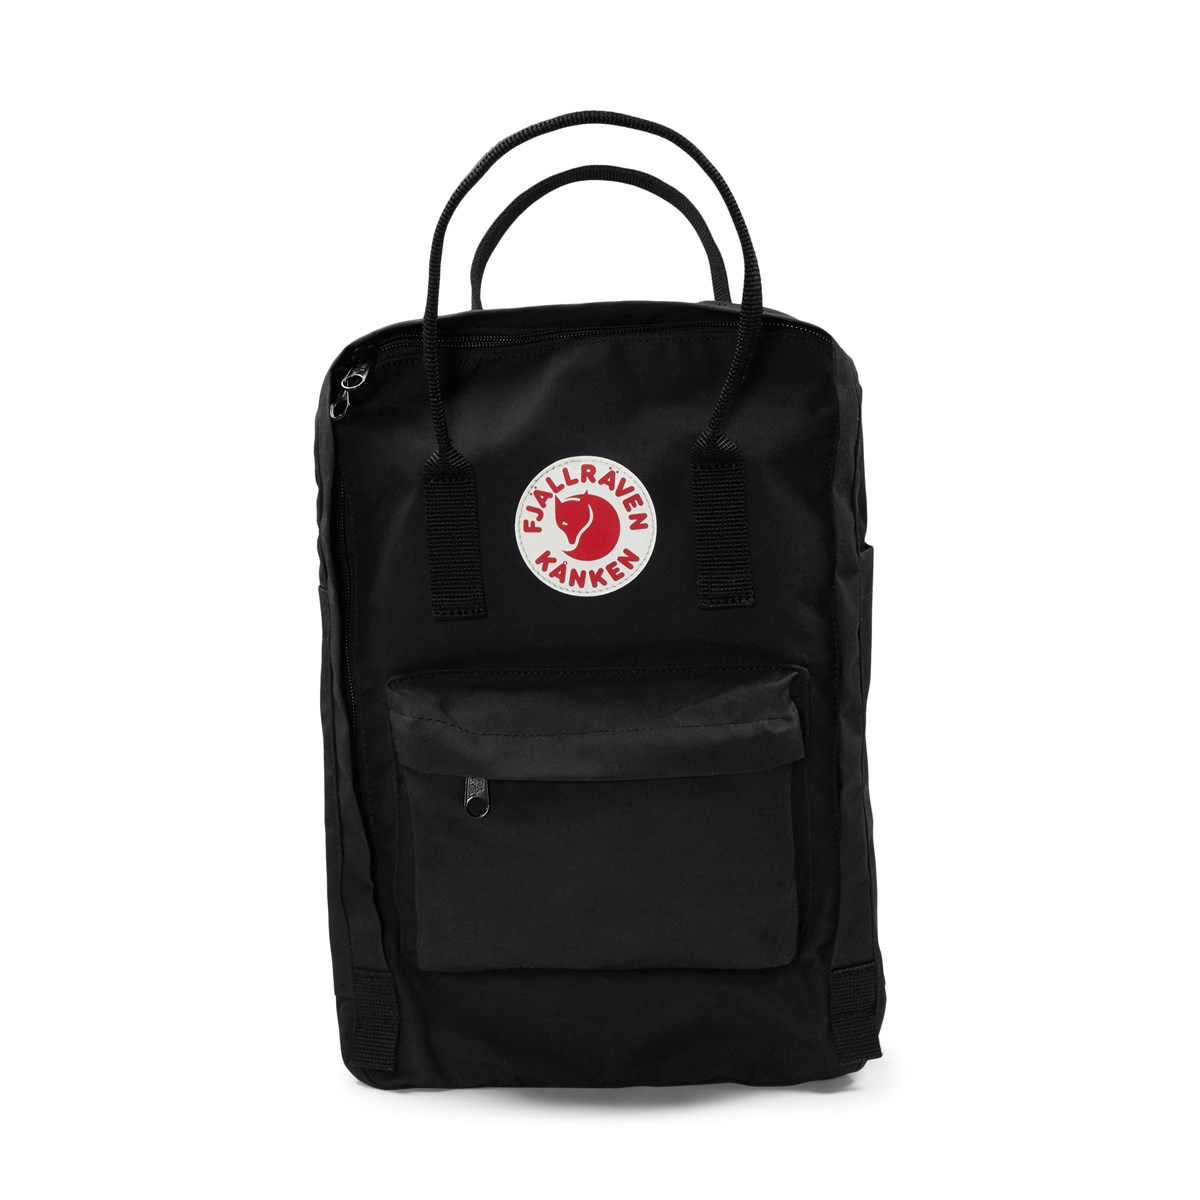 Kanken 15 Backpack in Black